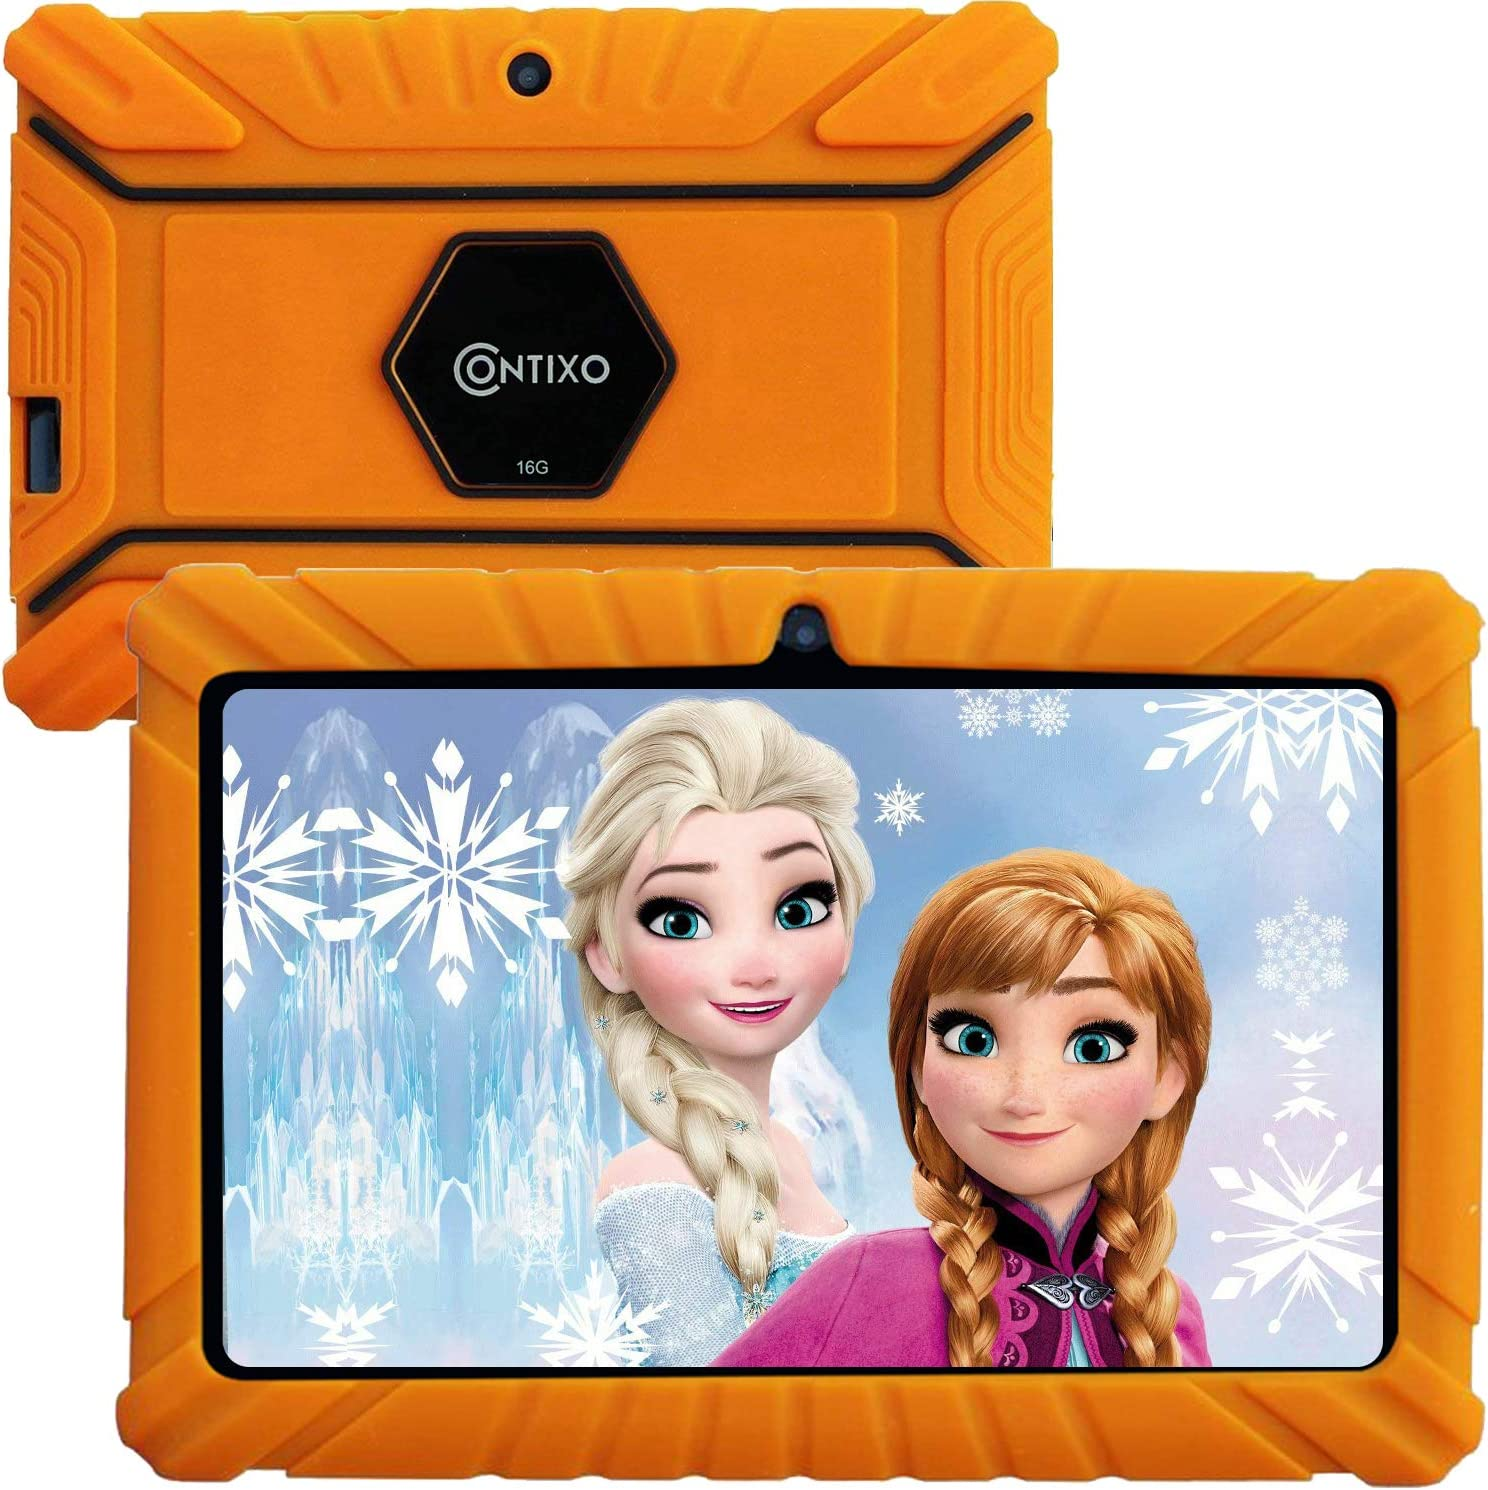 """Contixo V8-2 Kids Tablet - 16 GB ROM - 7"""" Display Learning Education Apps Pre-Installed - HD Display with WiFi Camera - Kids Games Ages 3 and up on Certified Google Play Store (Orange)"""